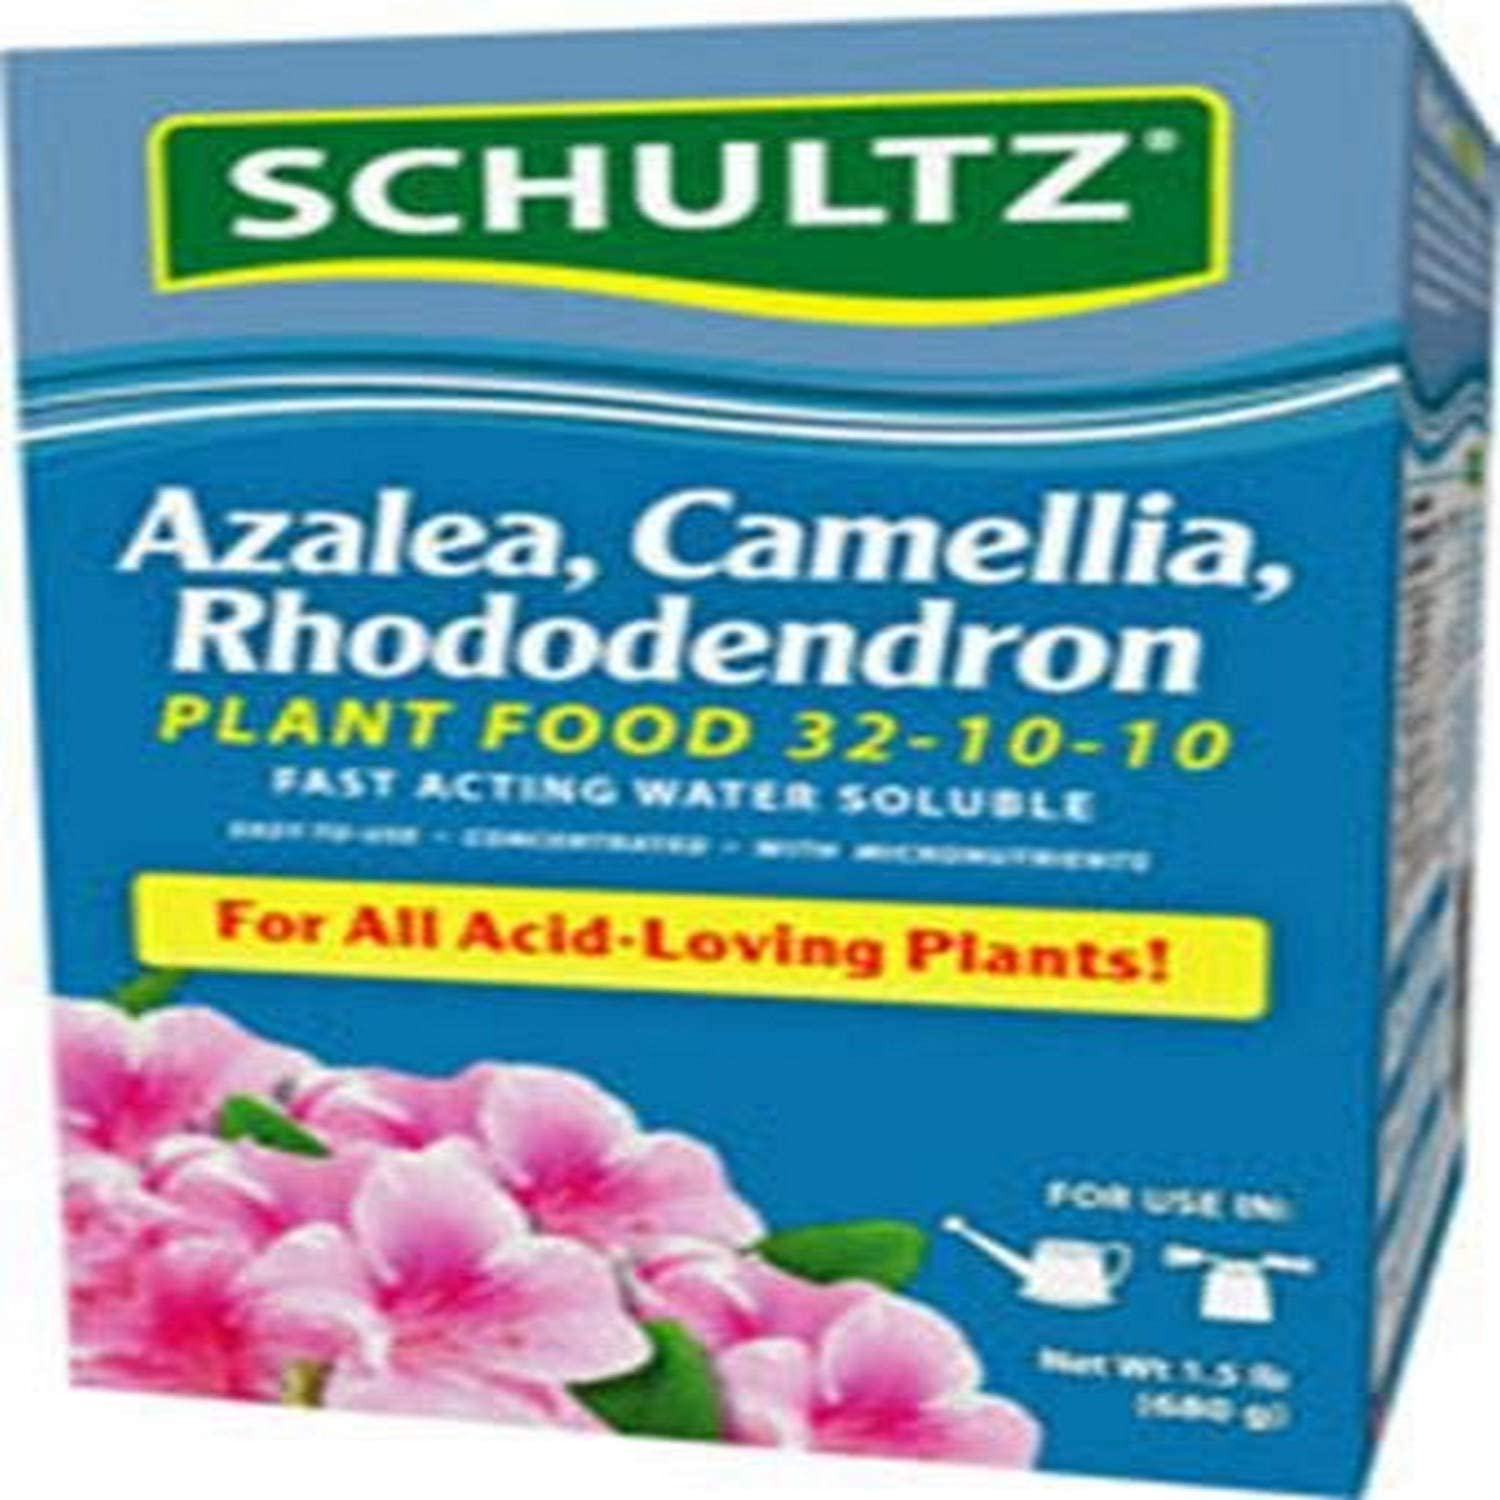 Schultz ACR Water Soluble Plant Food 32-10-10, 1.5 lb - SPF70860